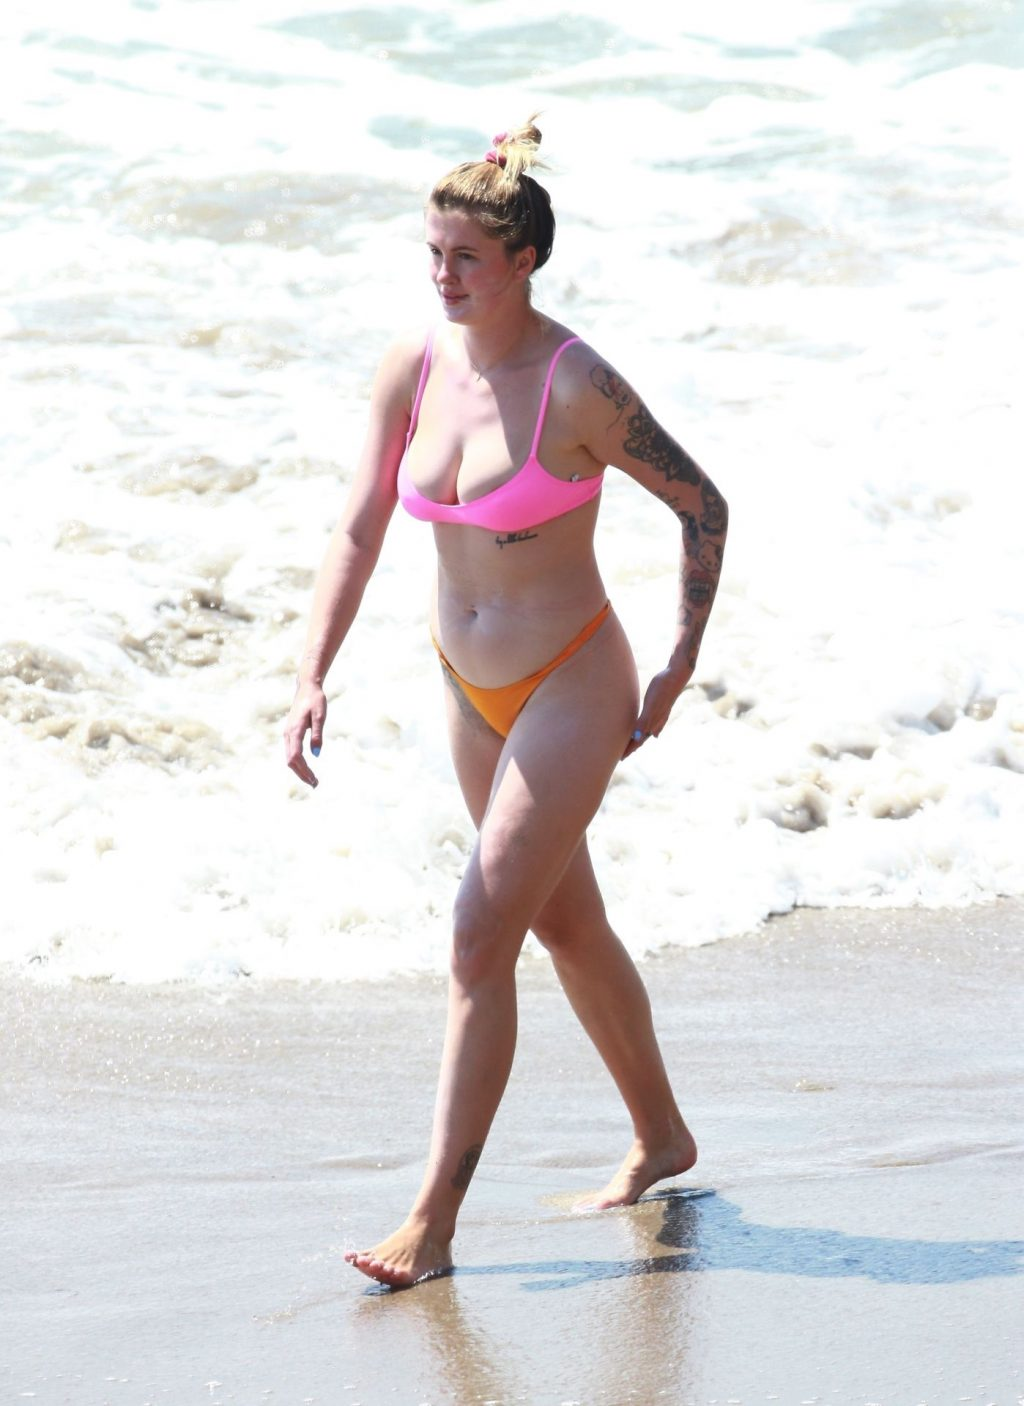 Ireland Baldwin Beats the Heat in Her Bikini at the Beach (34 Photos)